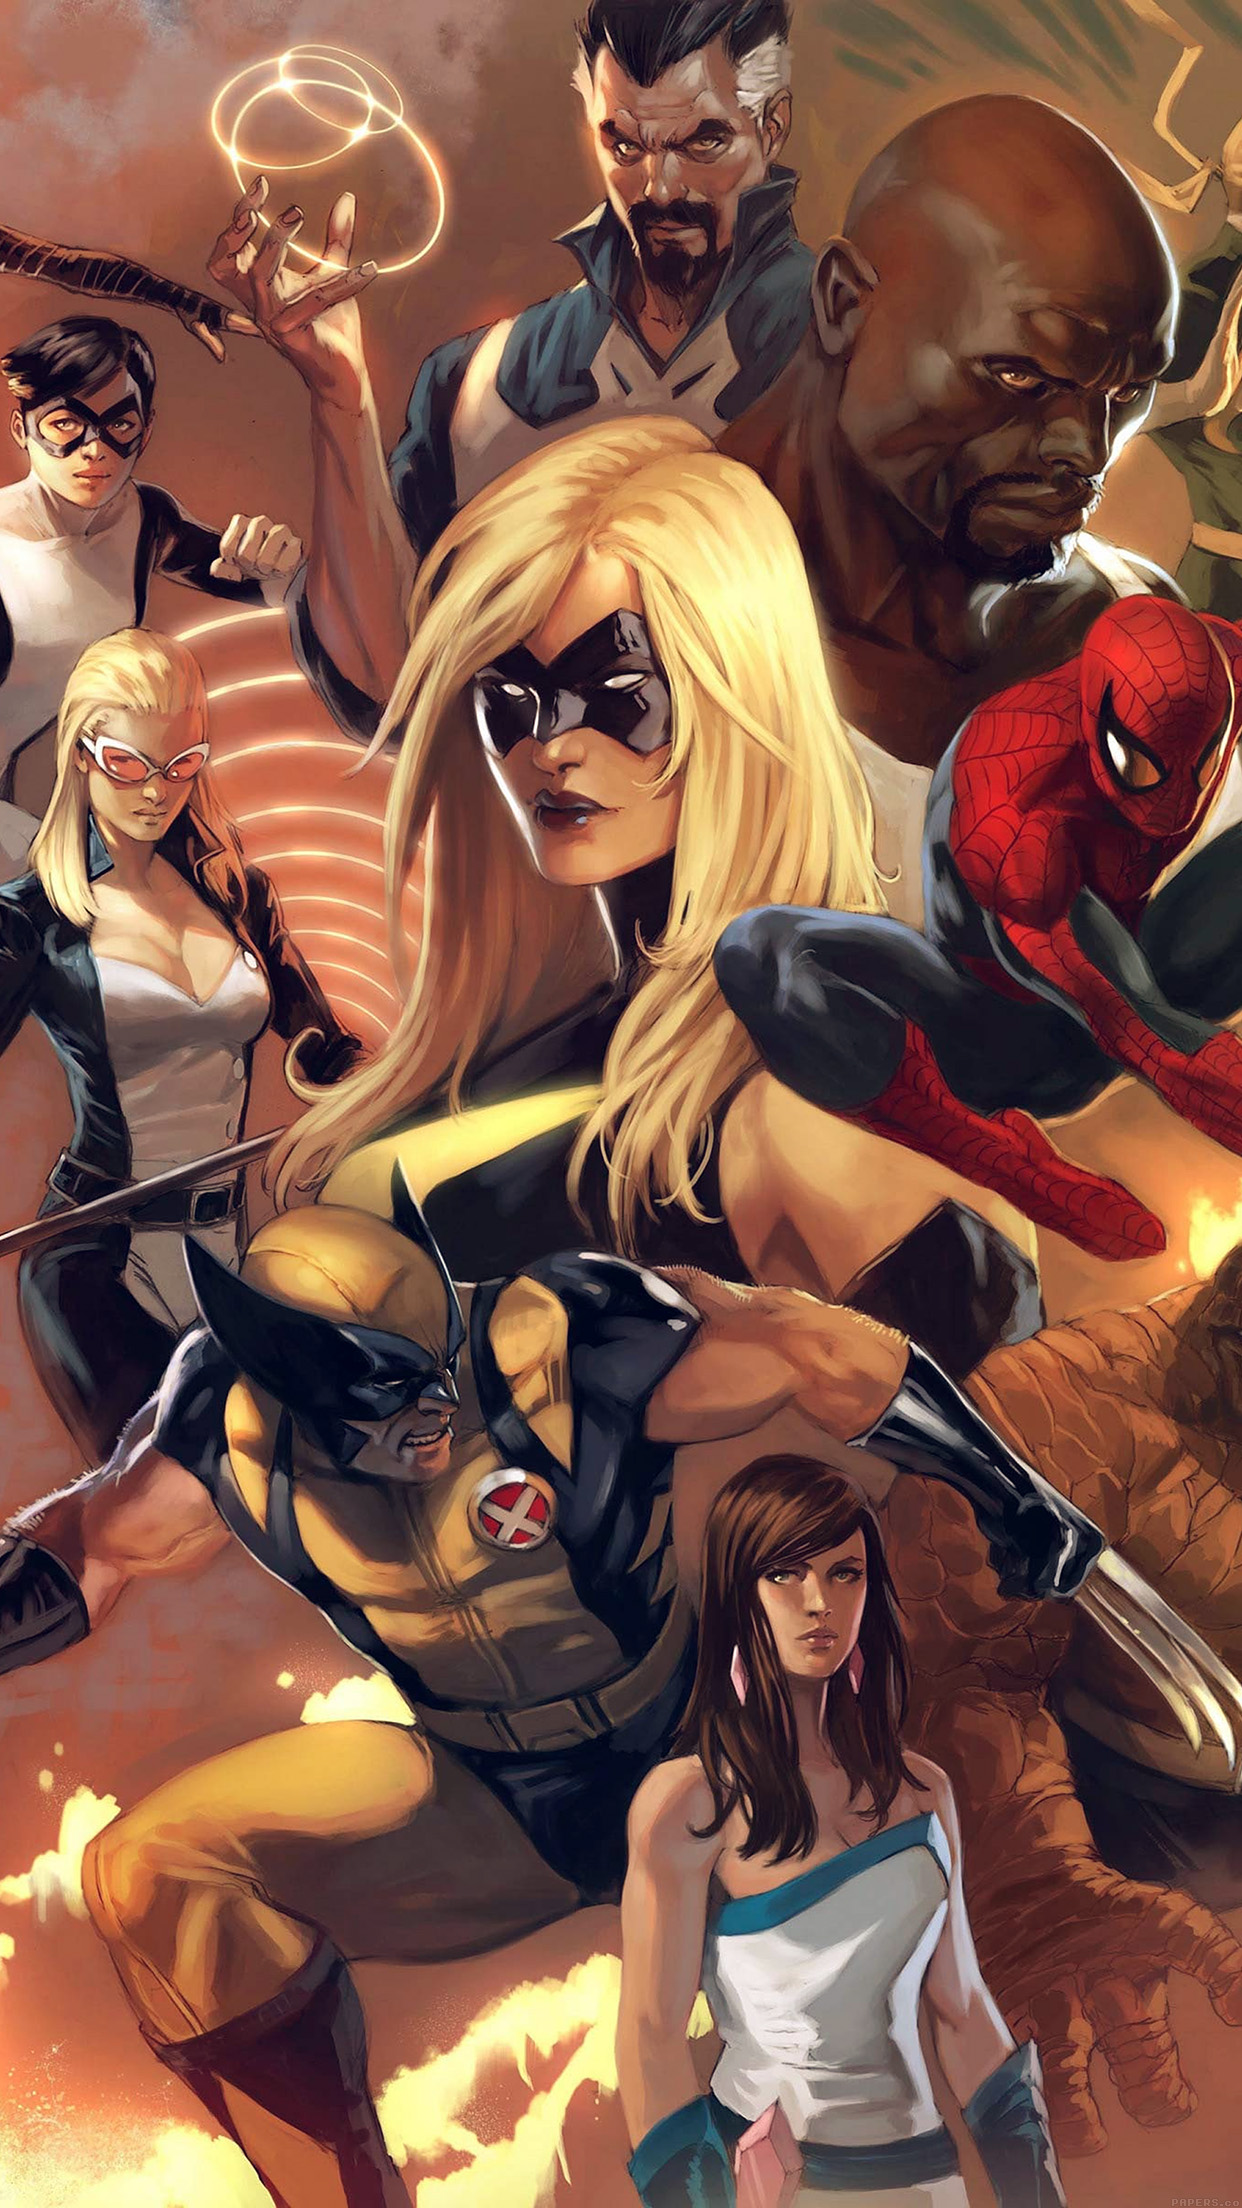 Gold Wallpaper Hd For Iphone 6 Papers Co Iphone Wallpaper Al80 Avengers Liiust Comics